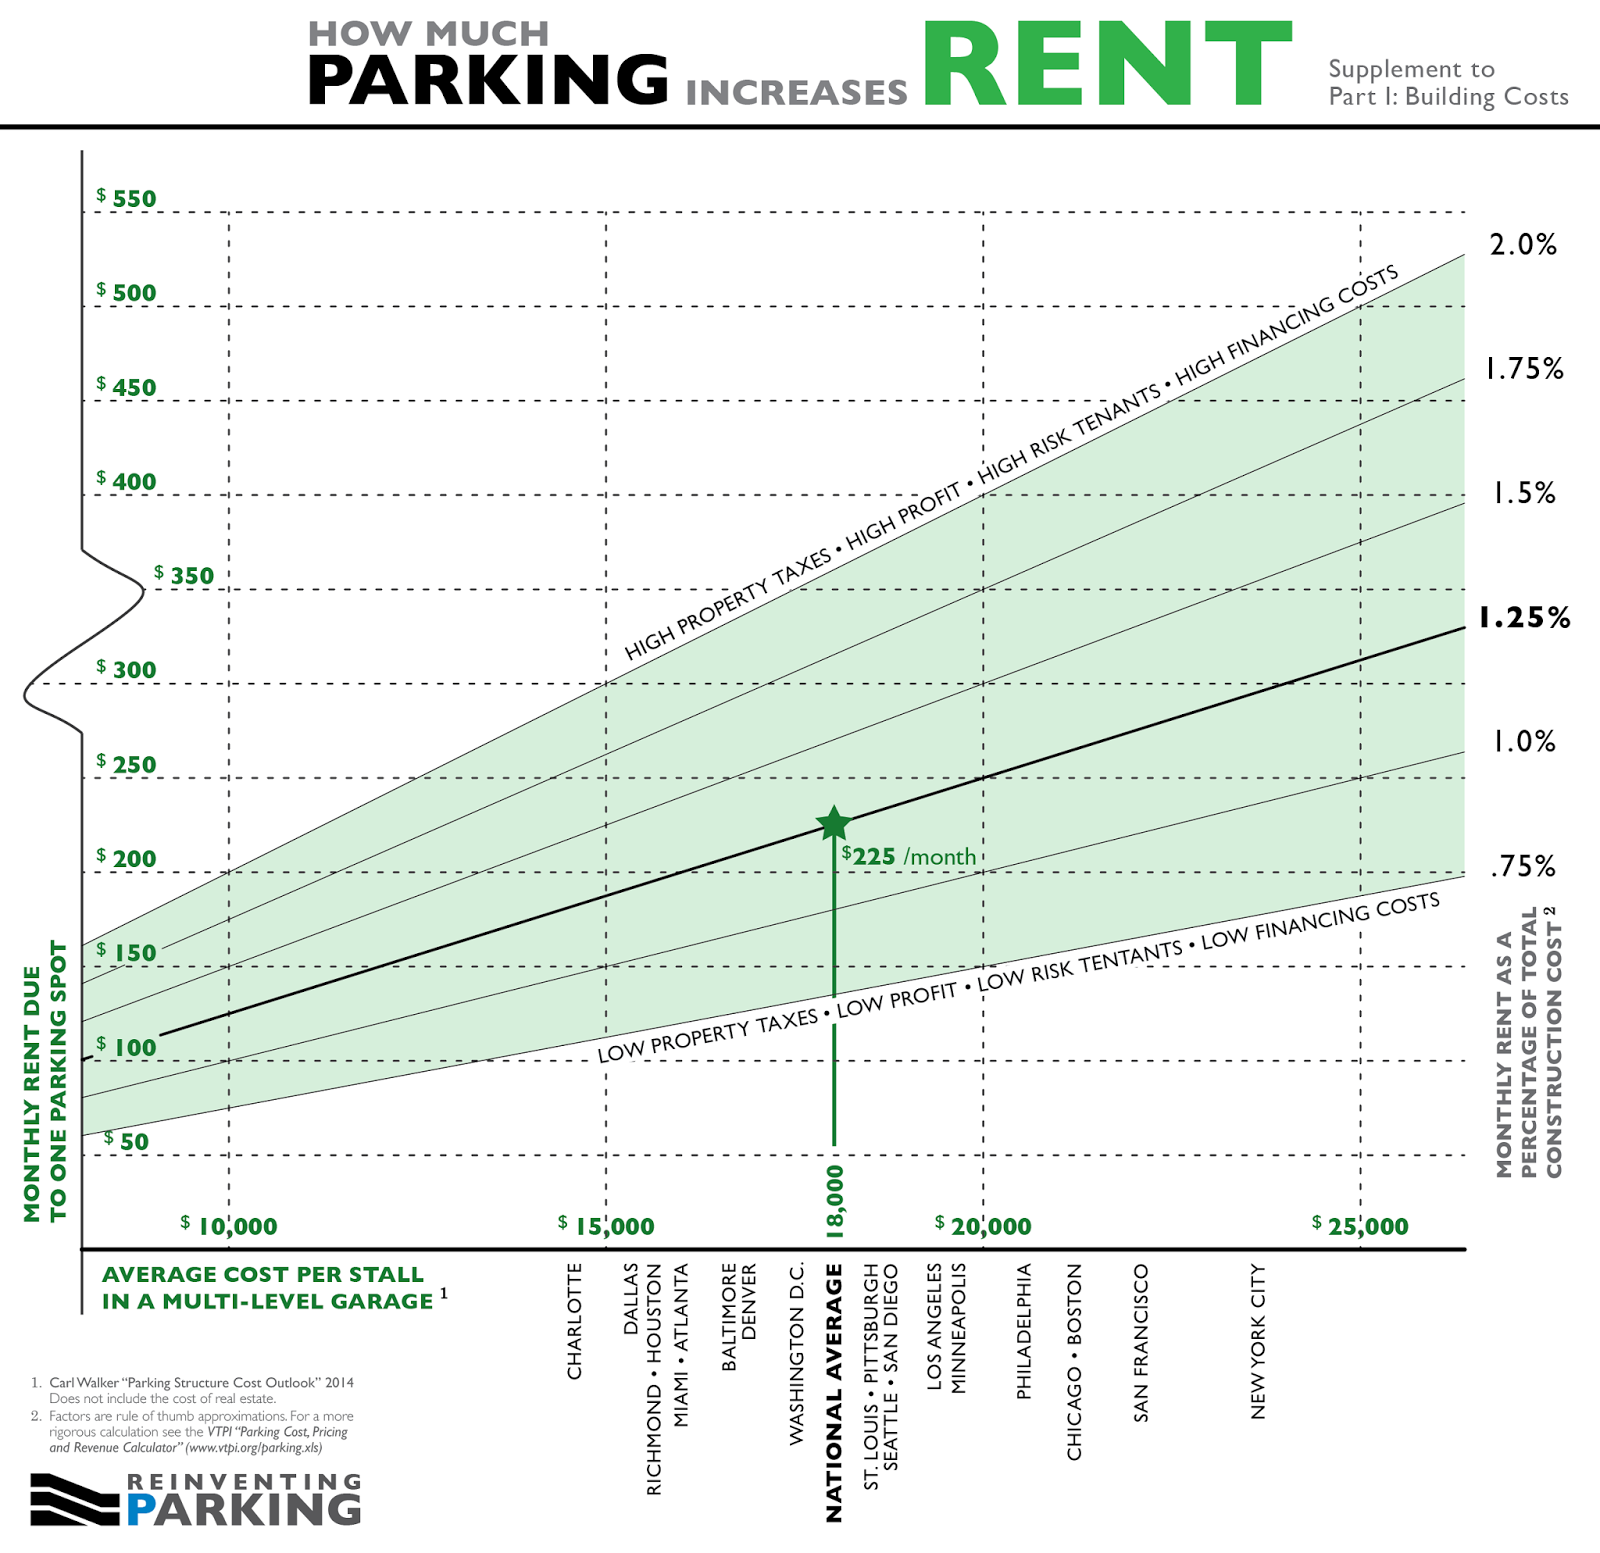 Monthly cost for one parking stall via Reinventing Parking. Click for a larger version.